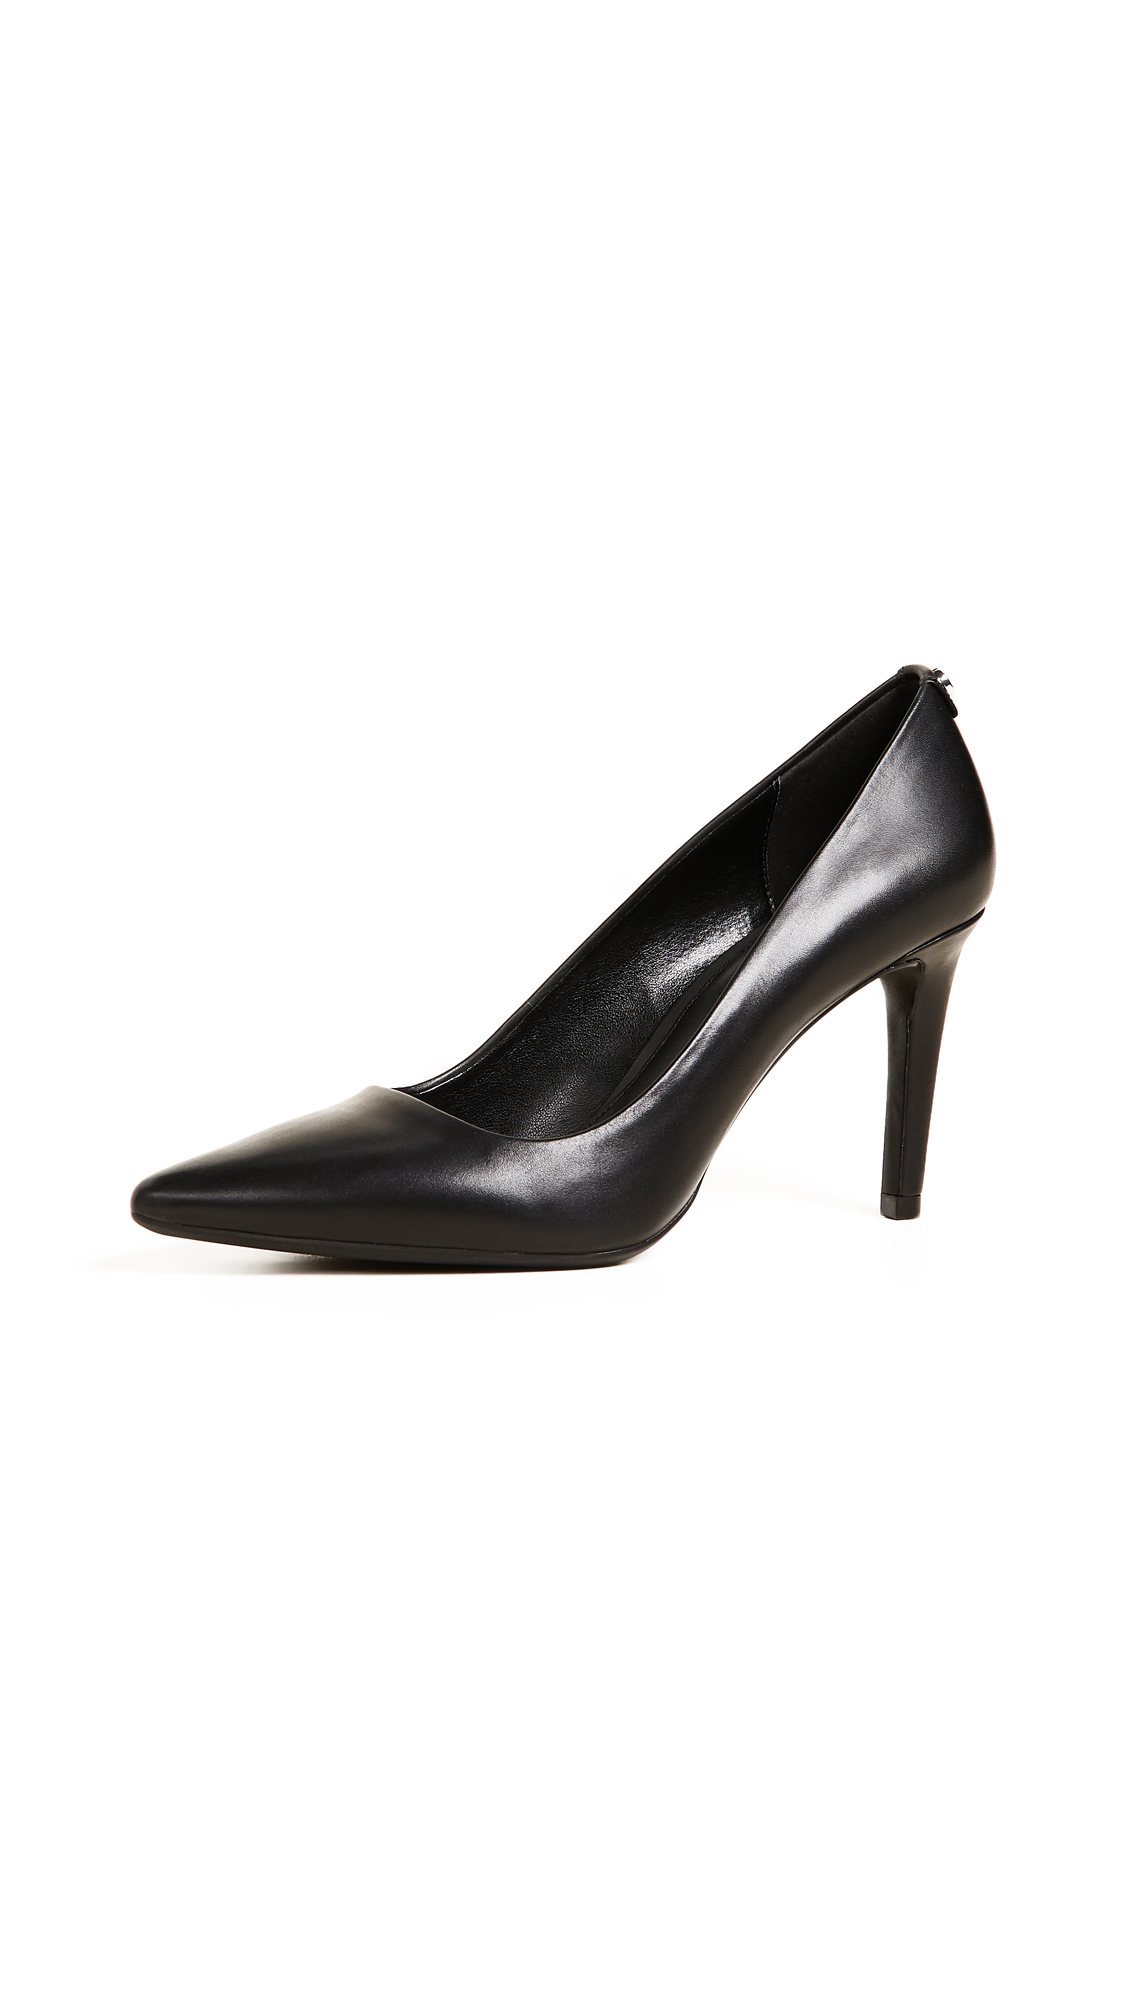 MICHAEL Michael Kors Dorothy Flex Pumps - Black